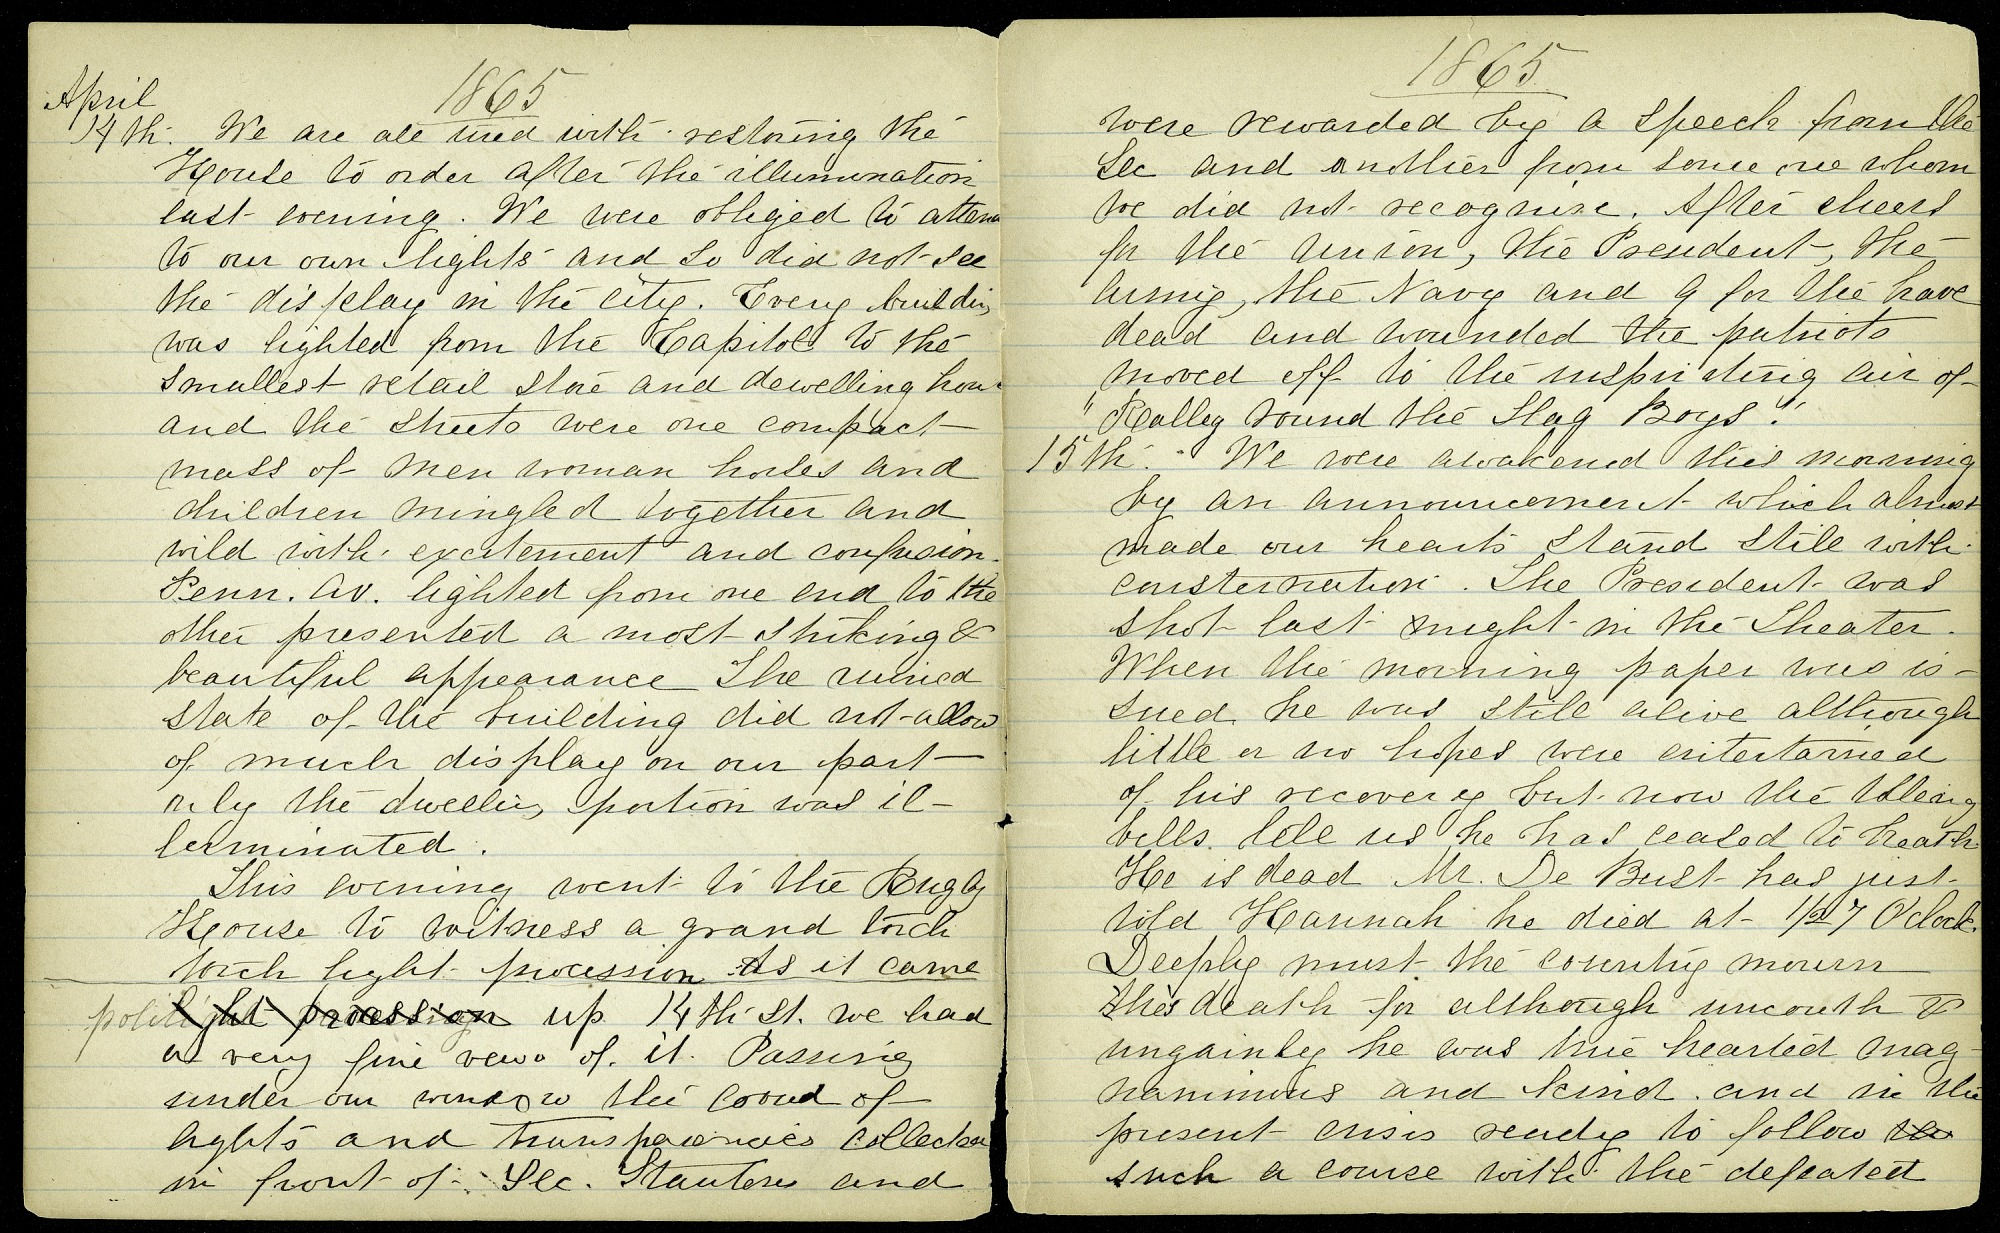 Mary Henry Diary Entries, April 1865, Death of President Lincoln